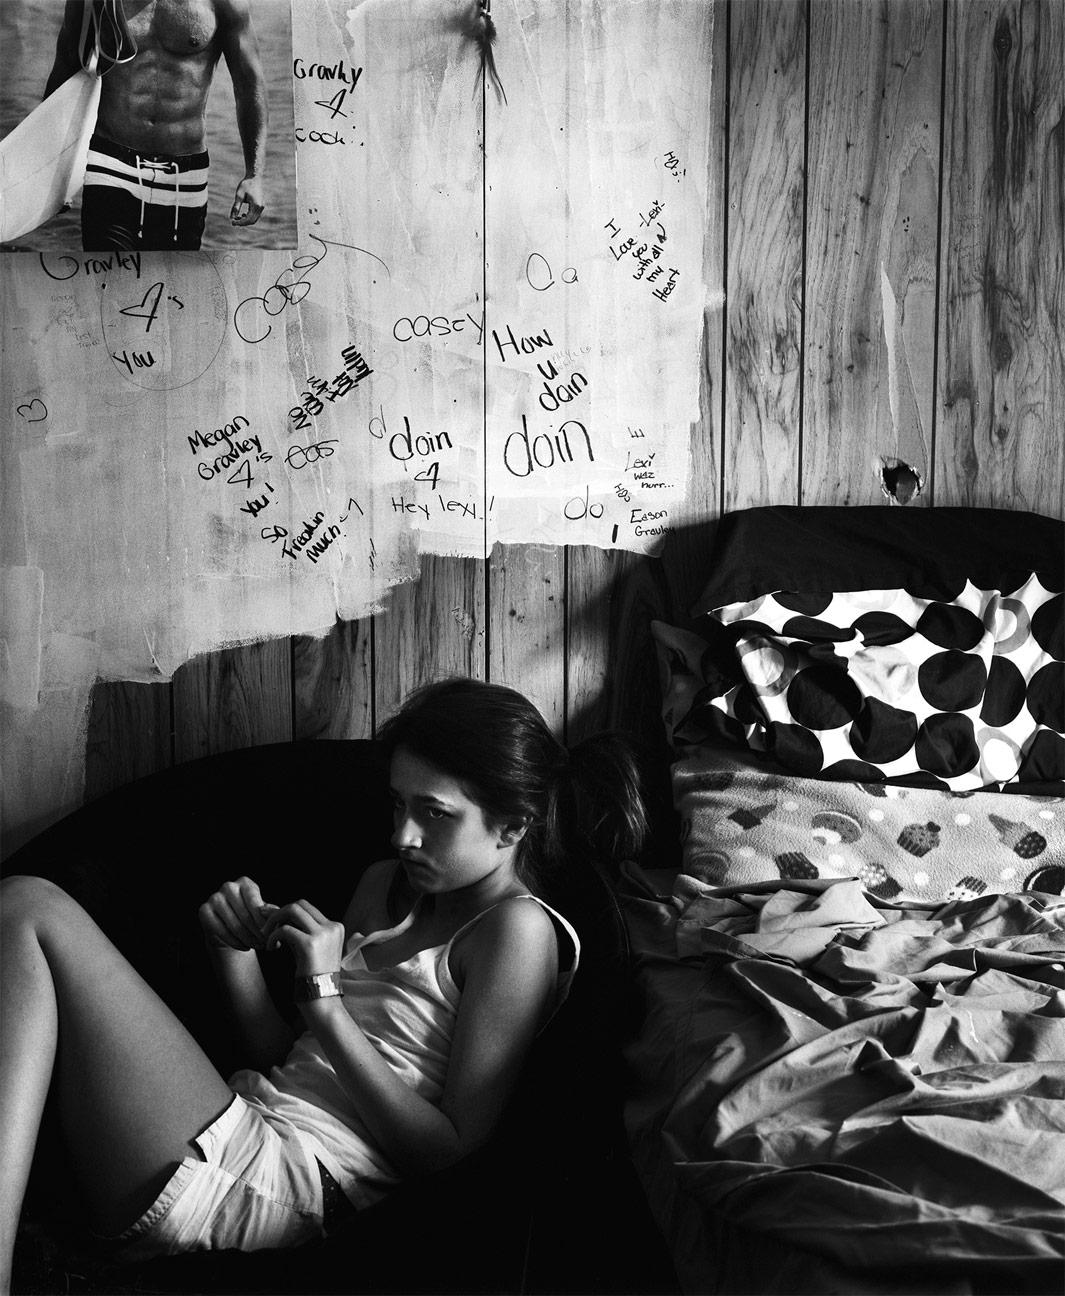 A Room for Alex, 2012Some time after I moved away, my sister and her children lived with my parents for awhile. Alex took over my old room, expressing herself onto thewalls. Not until I had printed this image did I notice the hole in the wall above the pillows.